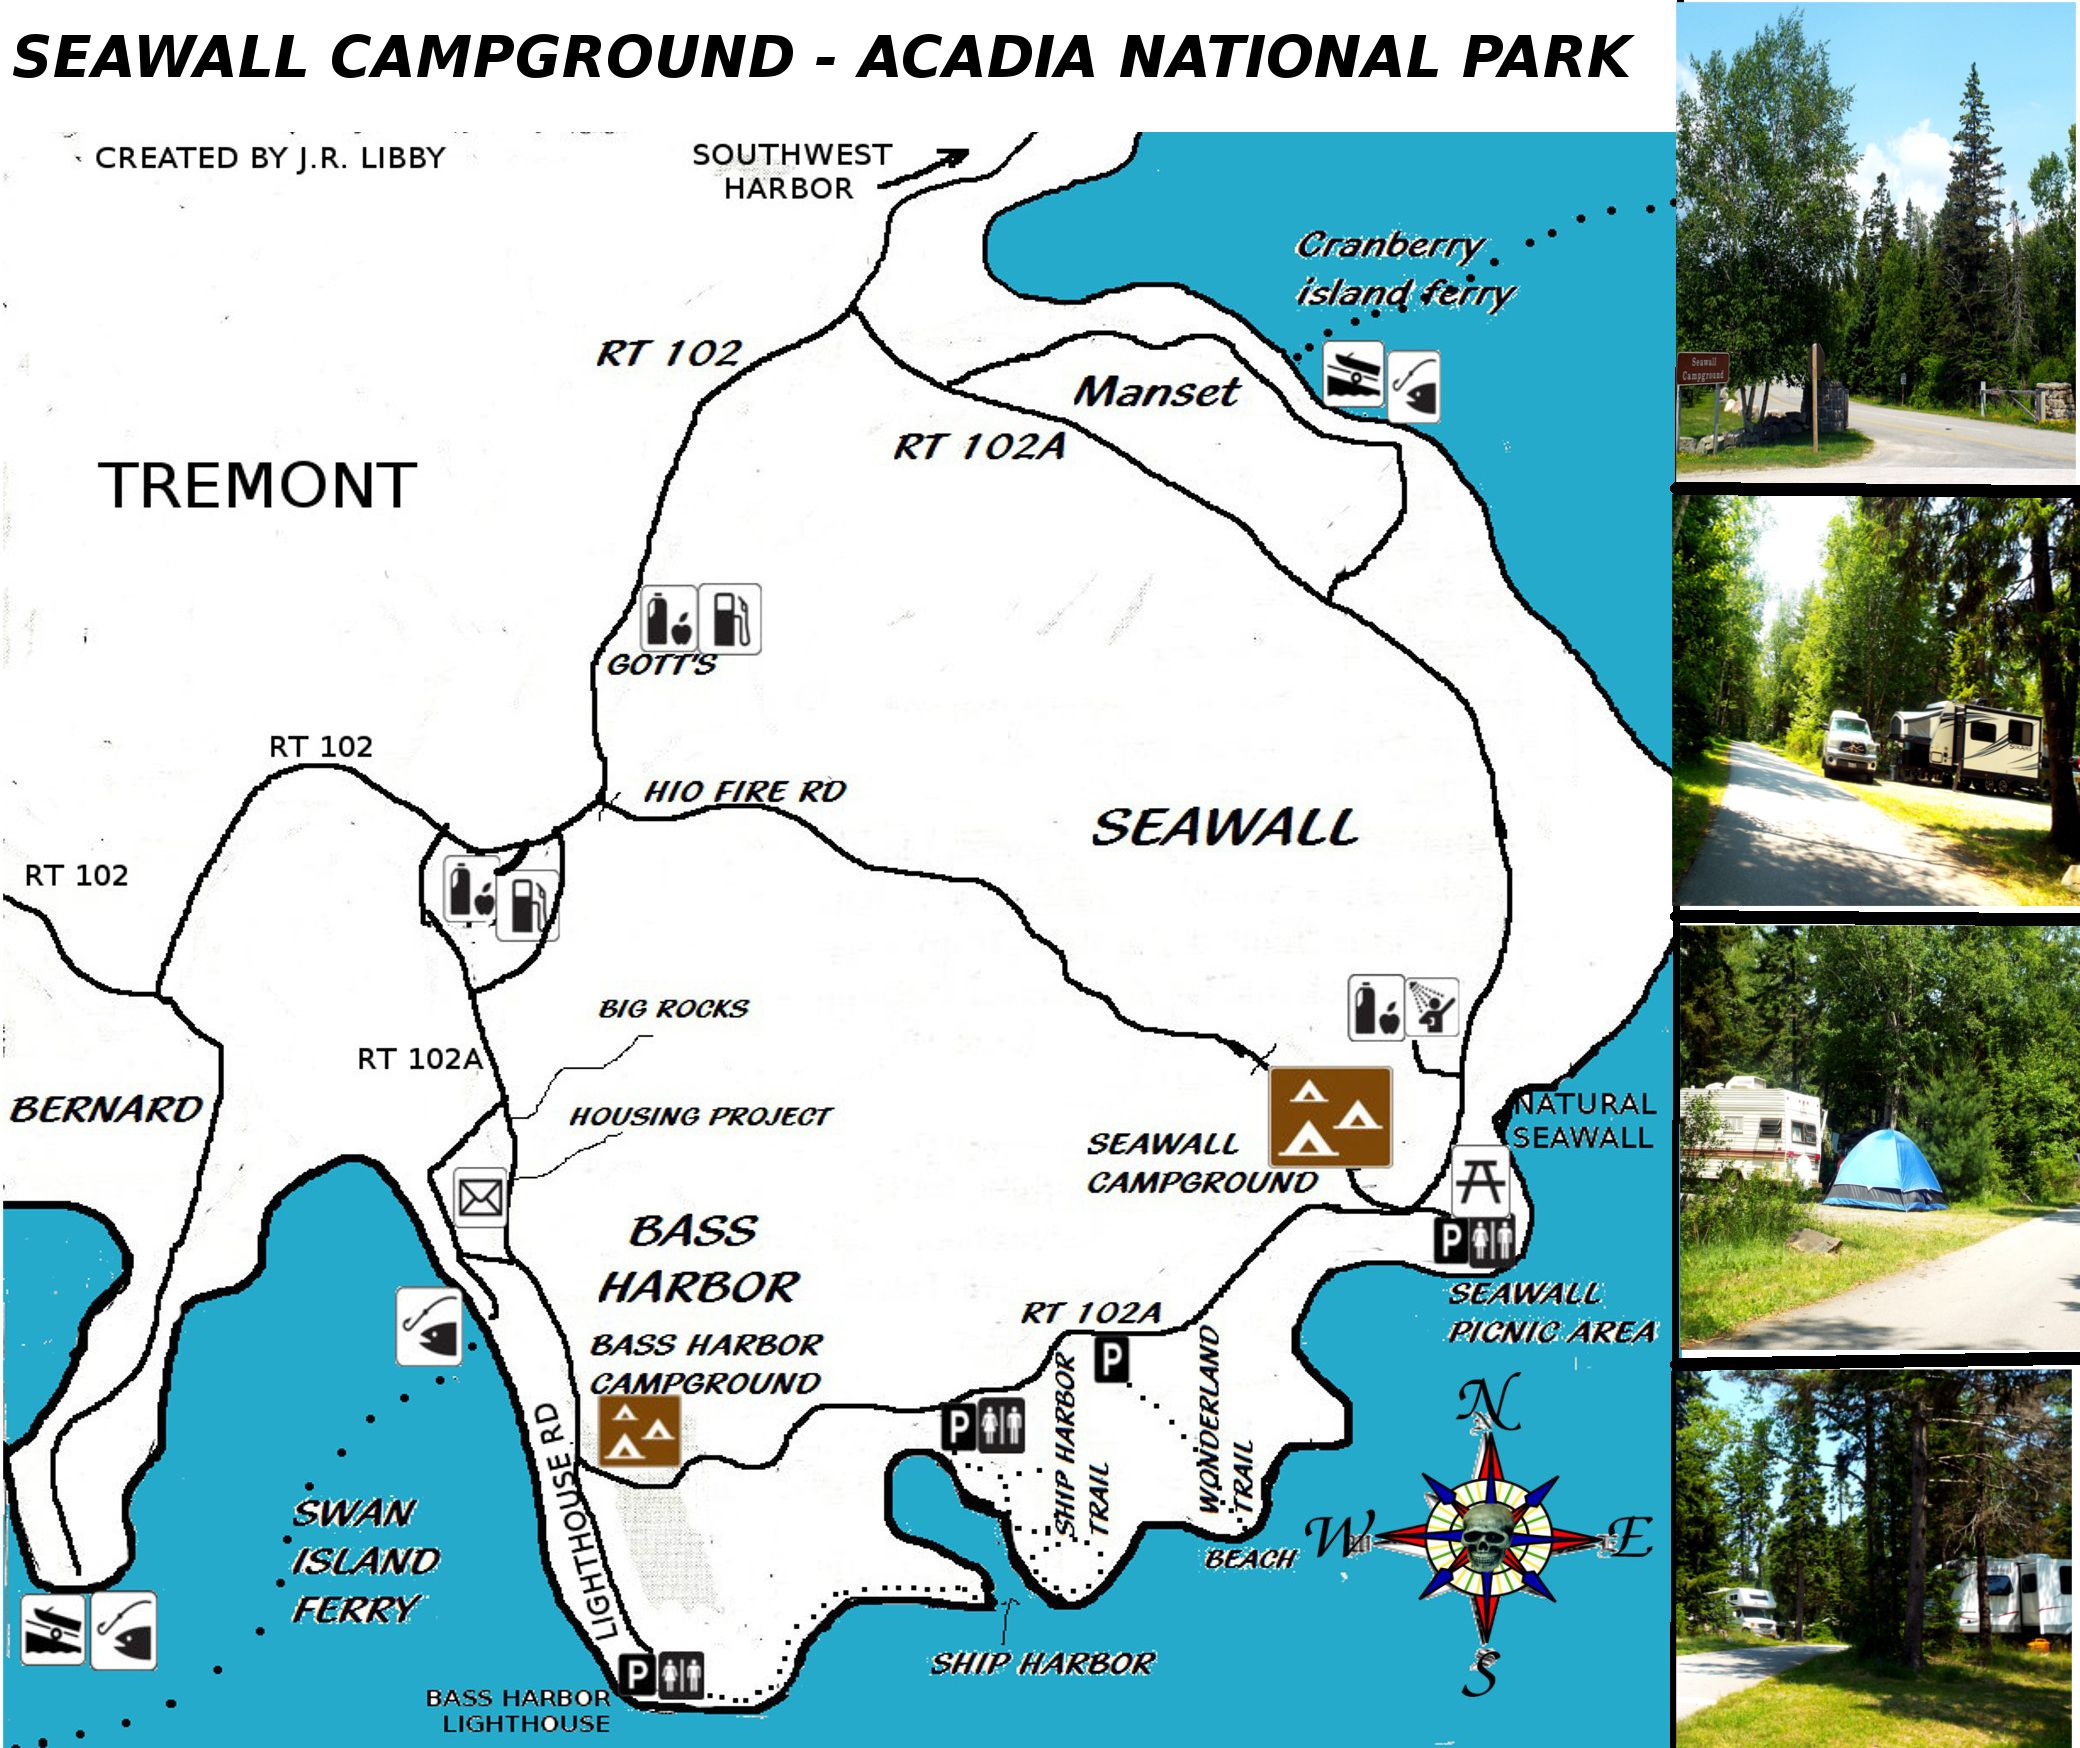 Map Of Seawall Campground In Acadia National Park SEawall - Acadia national park on the map of the us